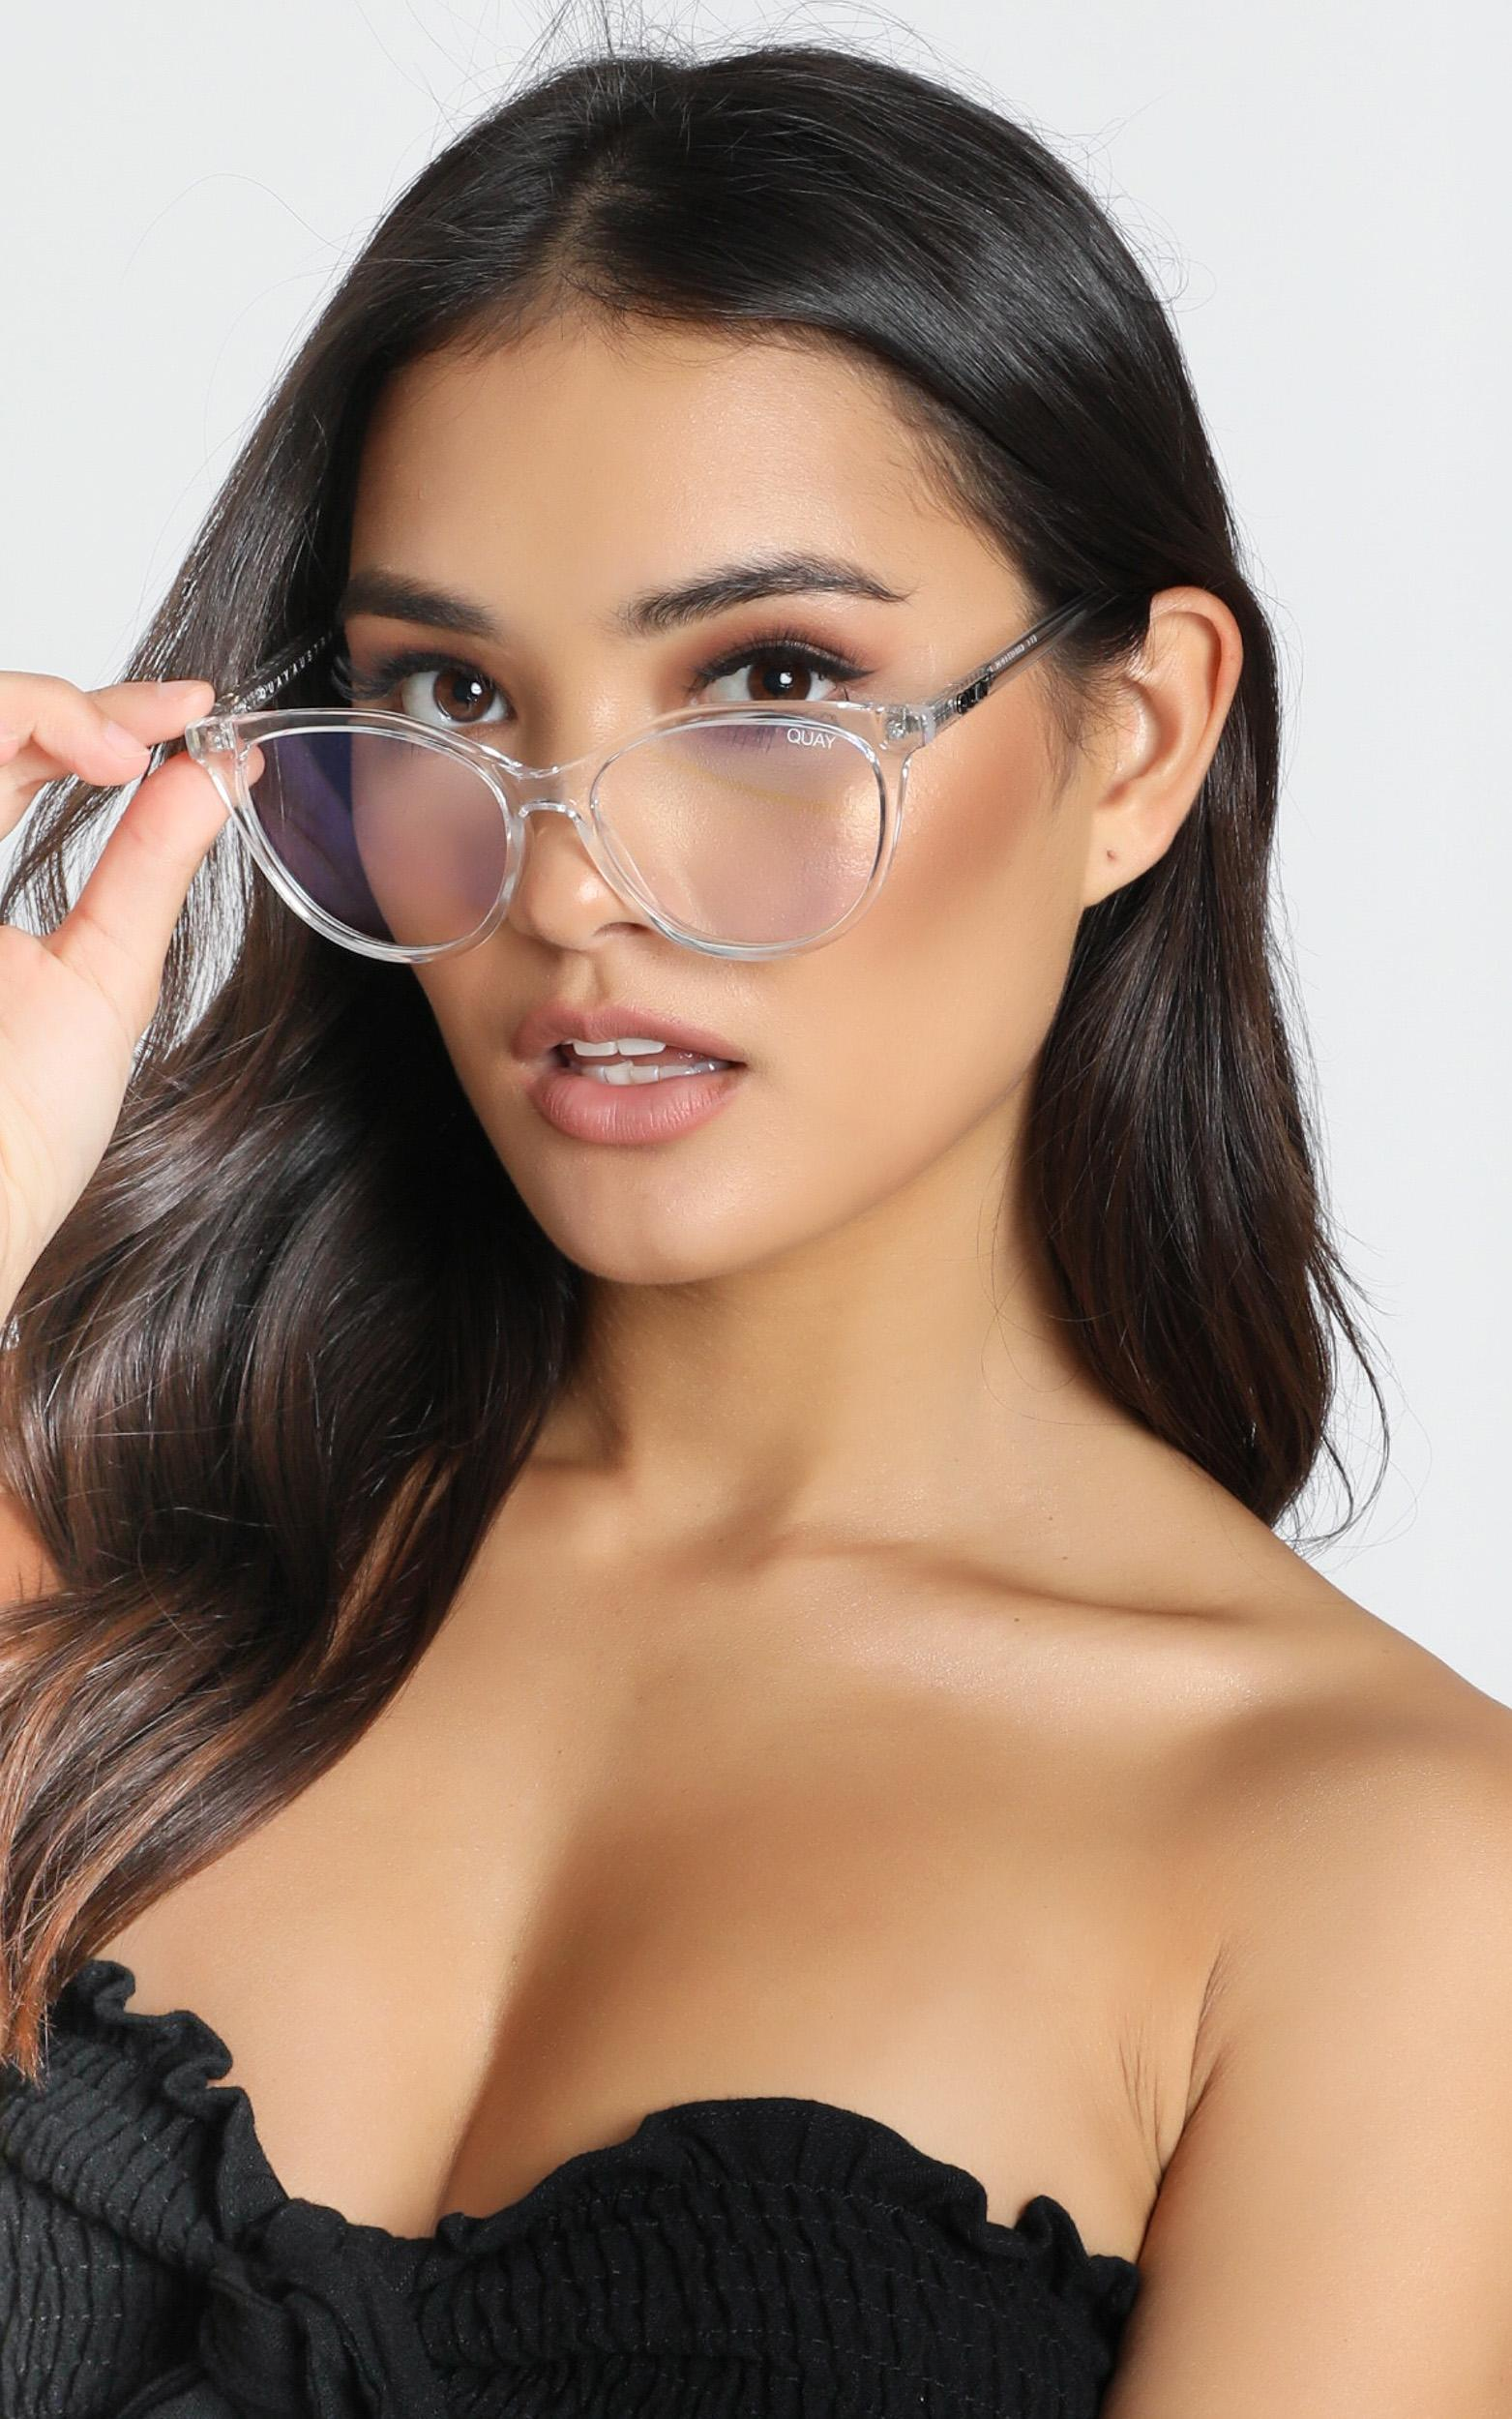 Quay - All Nighter Blue Light Glasses In Clear, Clear, hi-res image number null